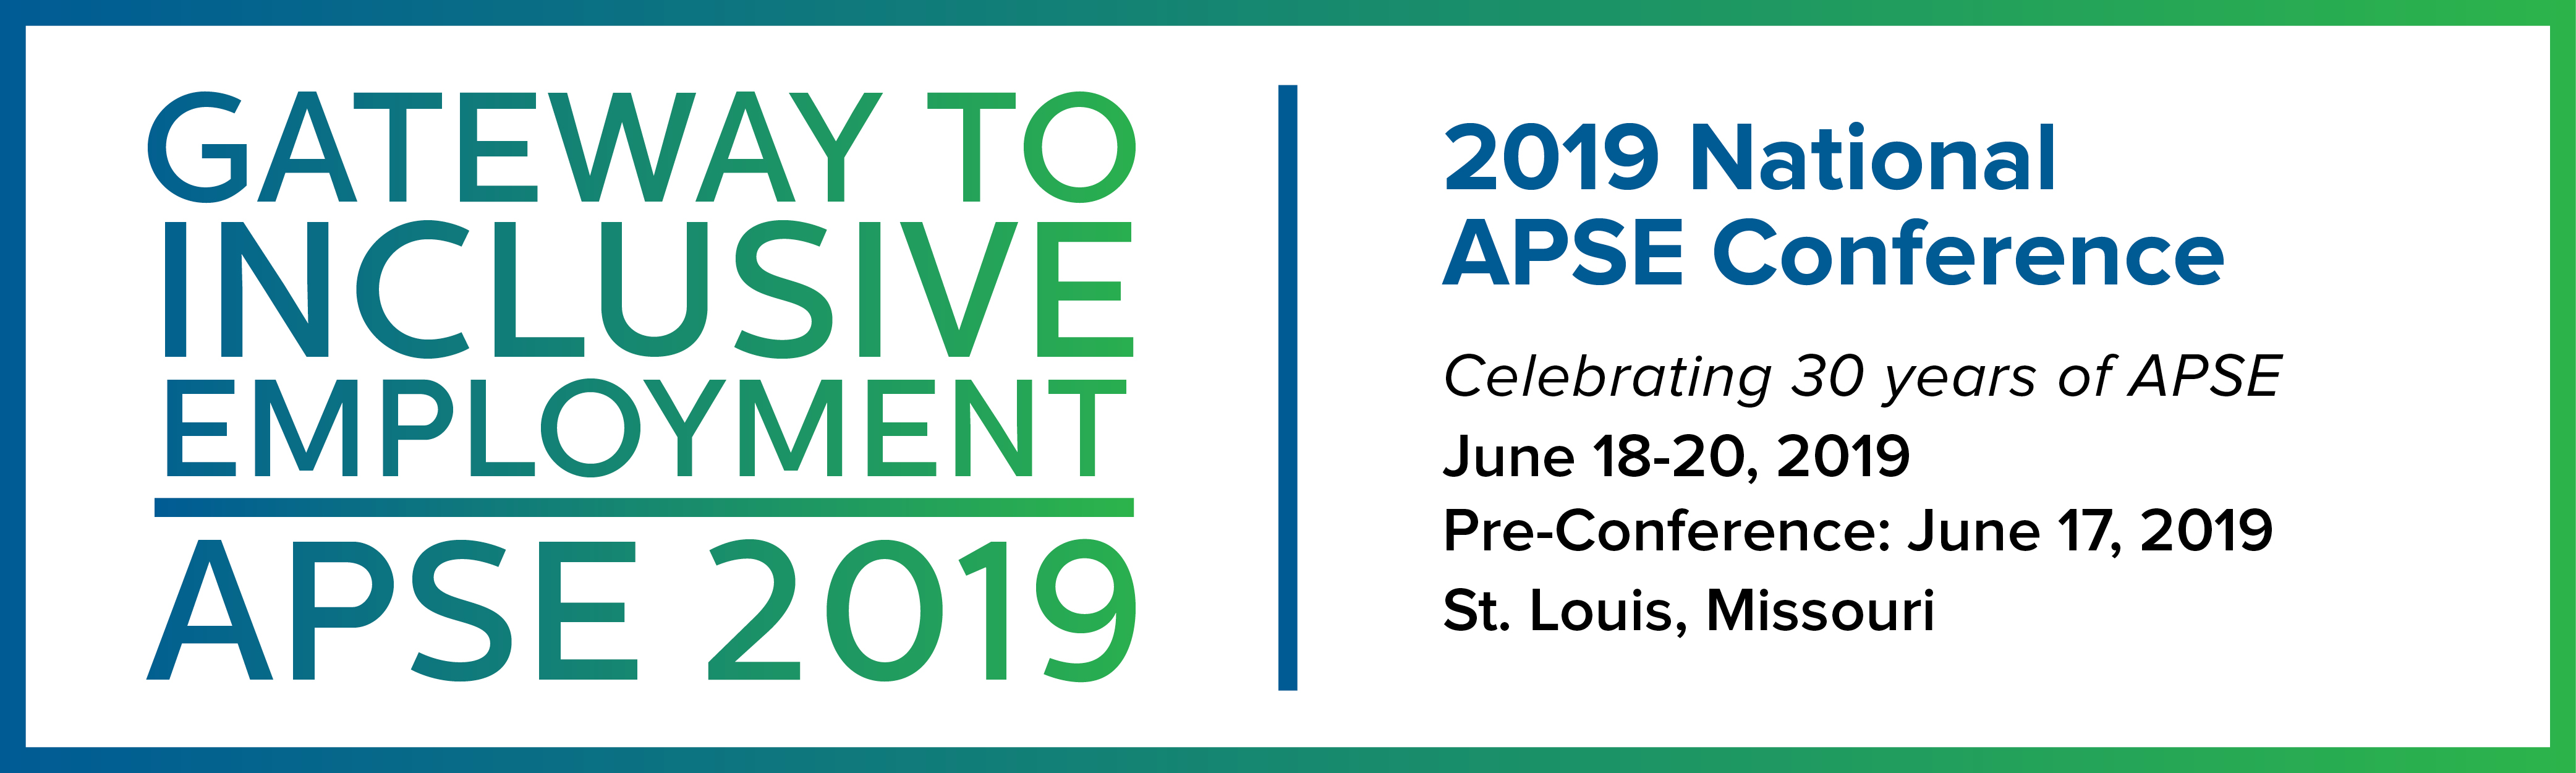 Text in a green box. Gateway to Inclusive Employment - APSE 2019. Celebrating 30 years of APSE. June 18-20, 2019. Pre-conference: June 17, 2019. St Louis Missouri.